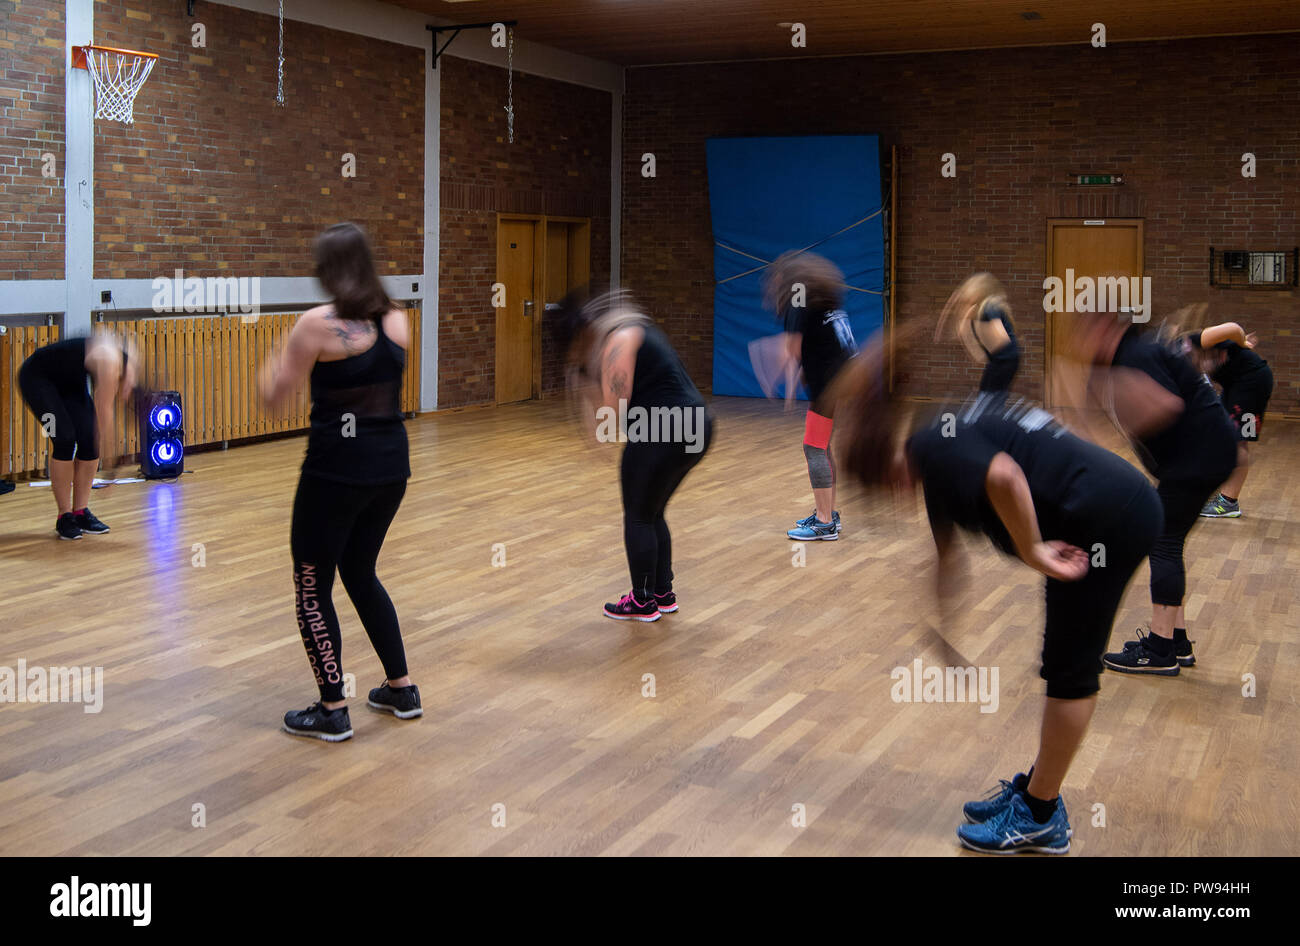 11 October 2018, Baden-Wuerttemberg, Ludwigsburg: 11 October 2018, Germany, Ludwigsburg: Participants headbanging during a Metalza hour at the Athletlik-Sportverein. Metalza is a dance workshop with metal music. (to dpa 'Headbanging as fitness program - Workout for metal fans' from 14.10.2018) Photo: Sebastian Gollnow/dpa - Stock Image